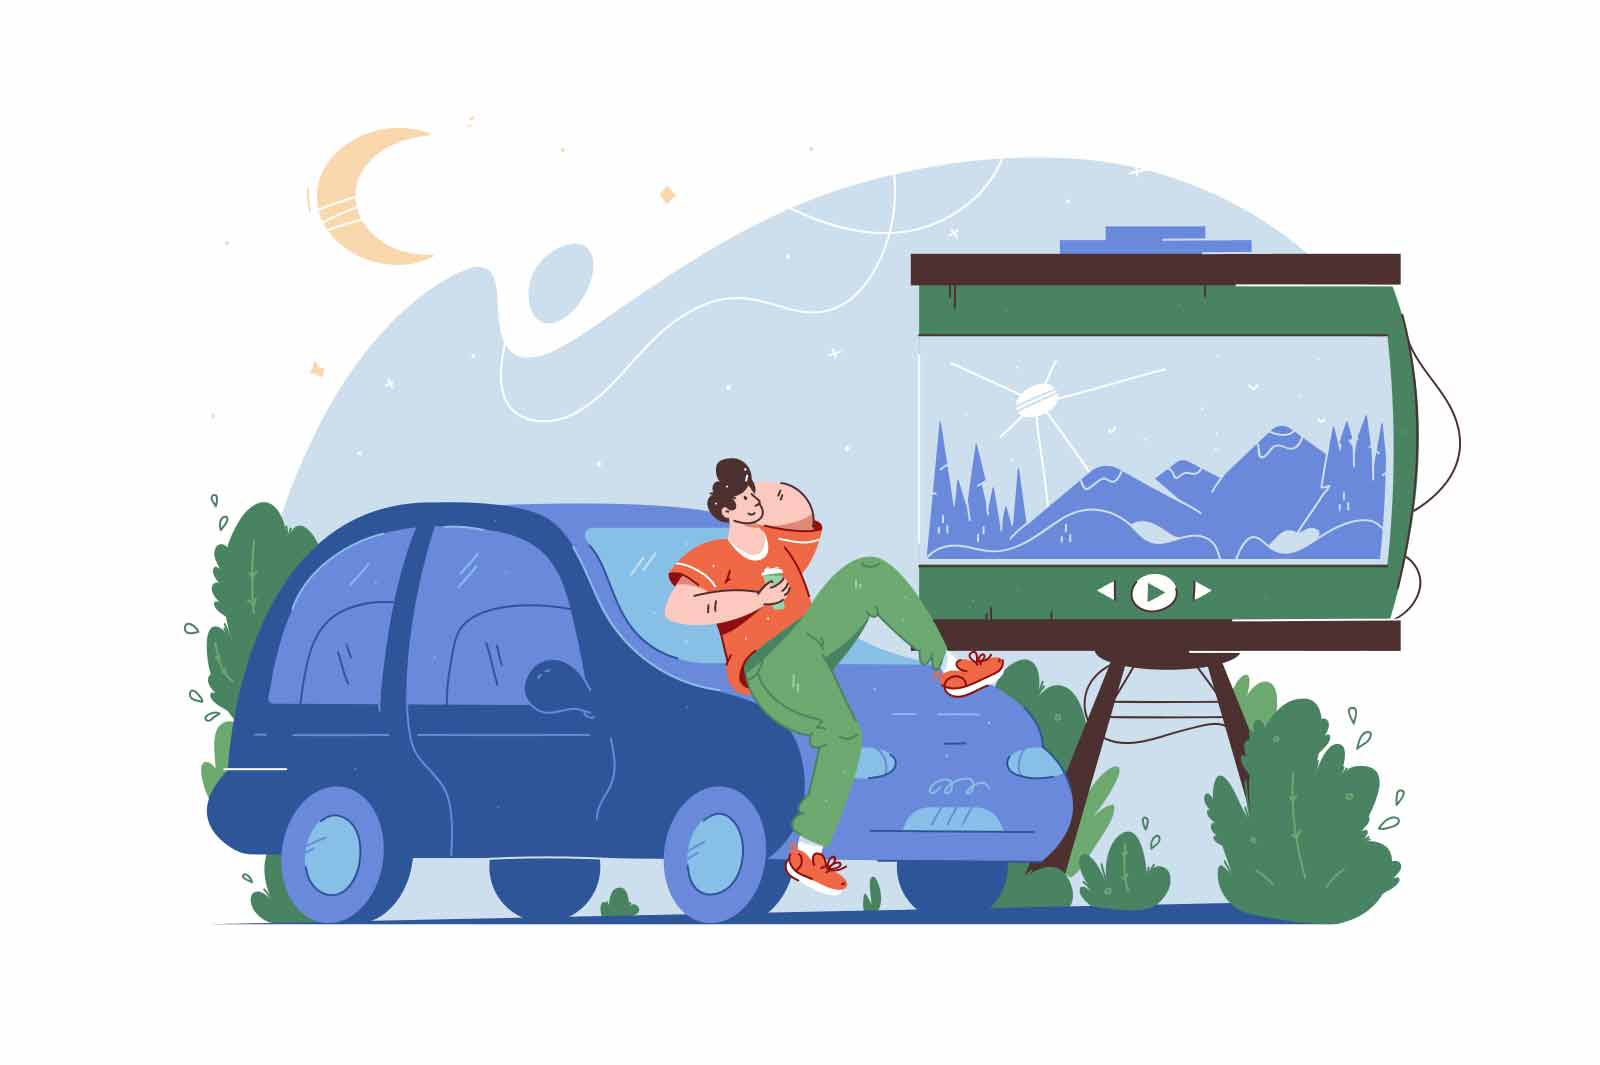 Guy watch cinema on open air on car vector illustration. Pastime outside, movie on big screen flat style. Nature, leisure, weekend concept